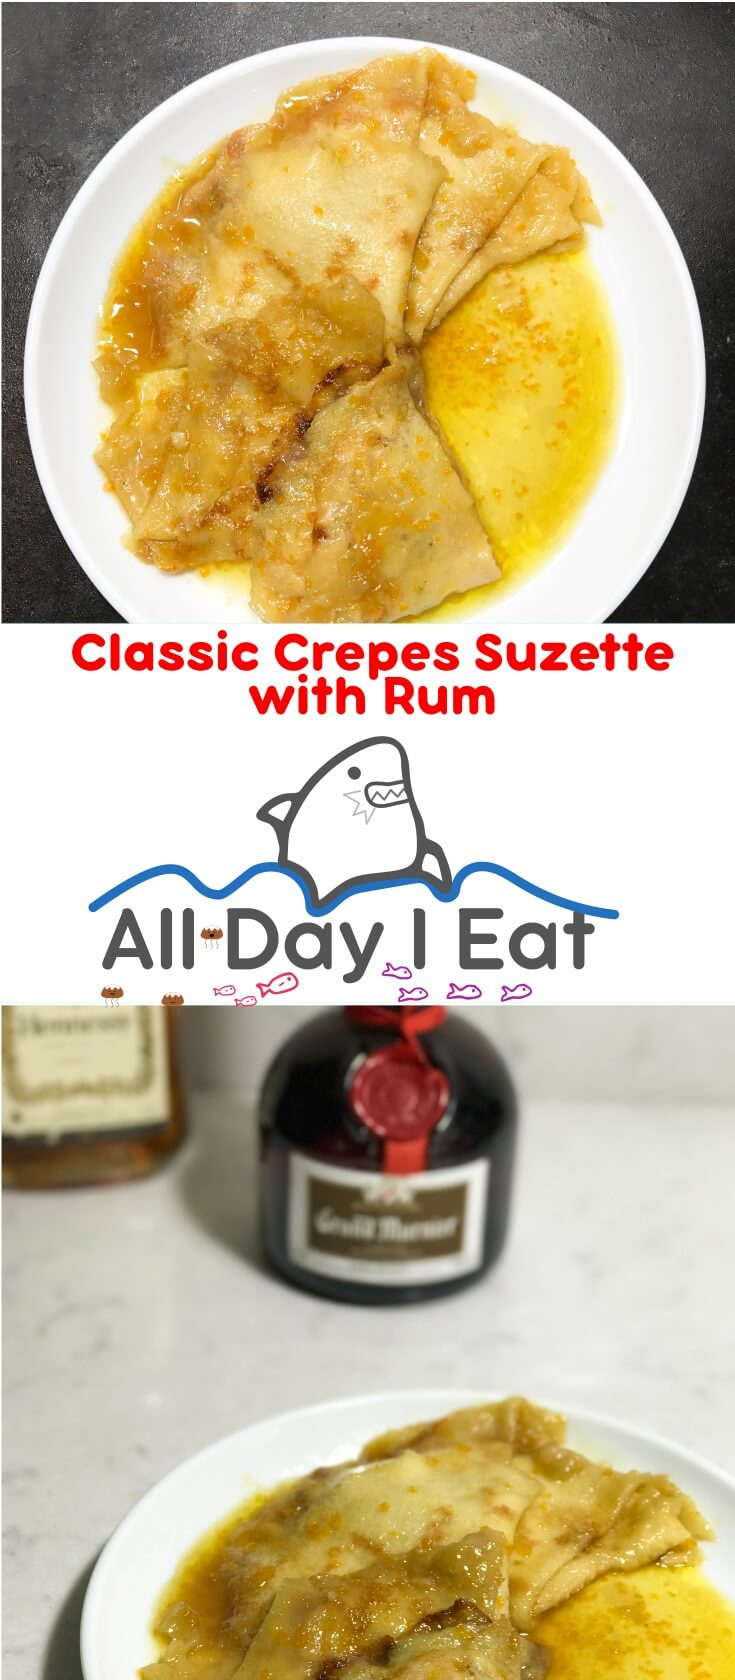 Classic Crepes Suzette with Rum. A rich, delicate, and boozy dessert with a strong orange aroma. Sure to please and impress!!